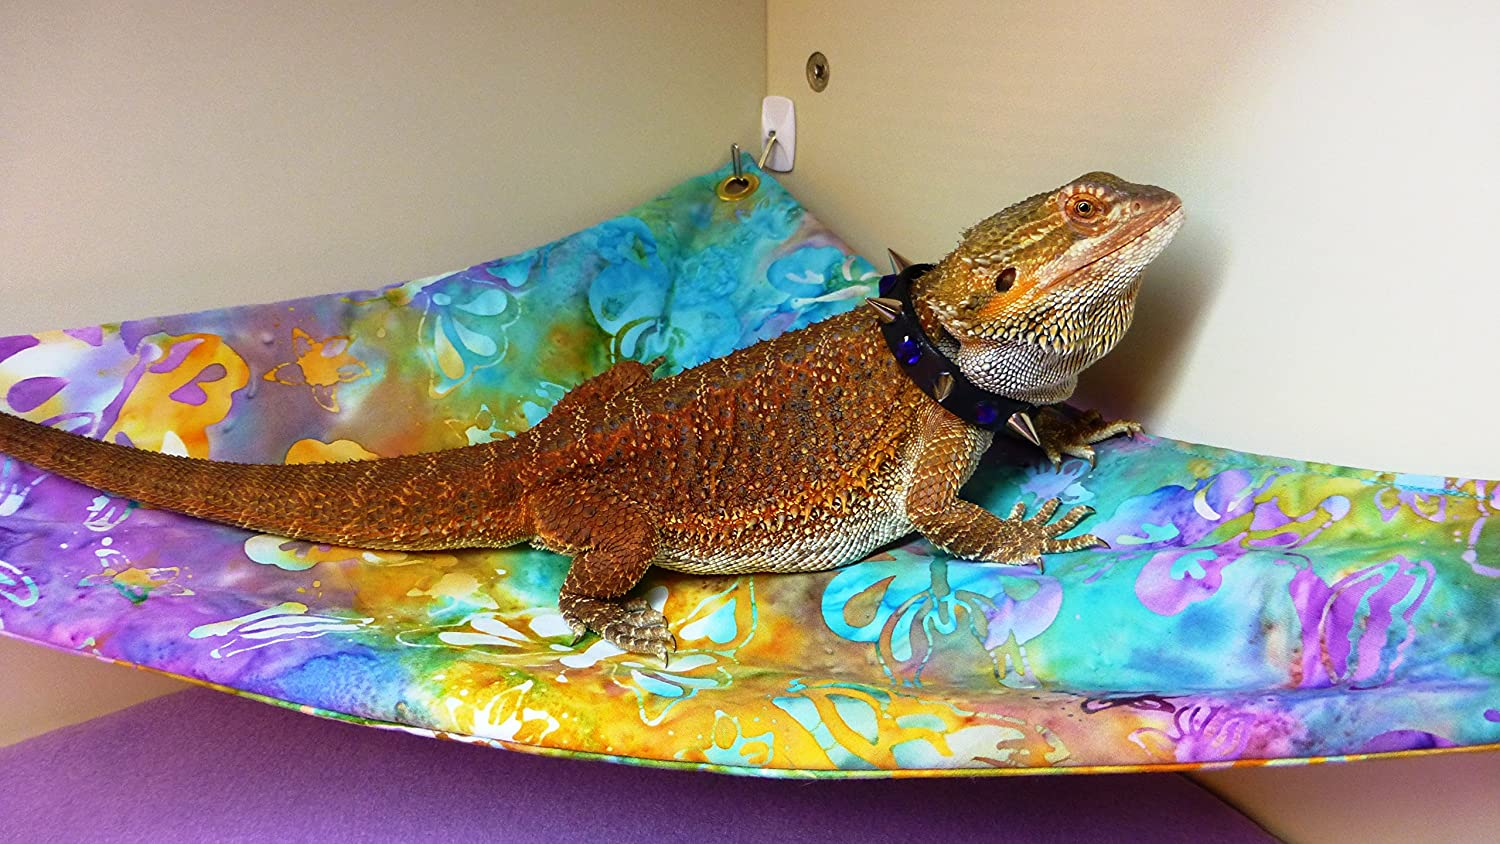 amazon     hammock for bearded dragons watercolor flowers fabric with suction cup hooks   pet supplies amazon     hammock for bearded dragons watercolor flowers      rh   amazon